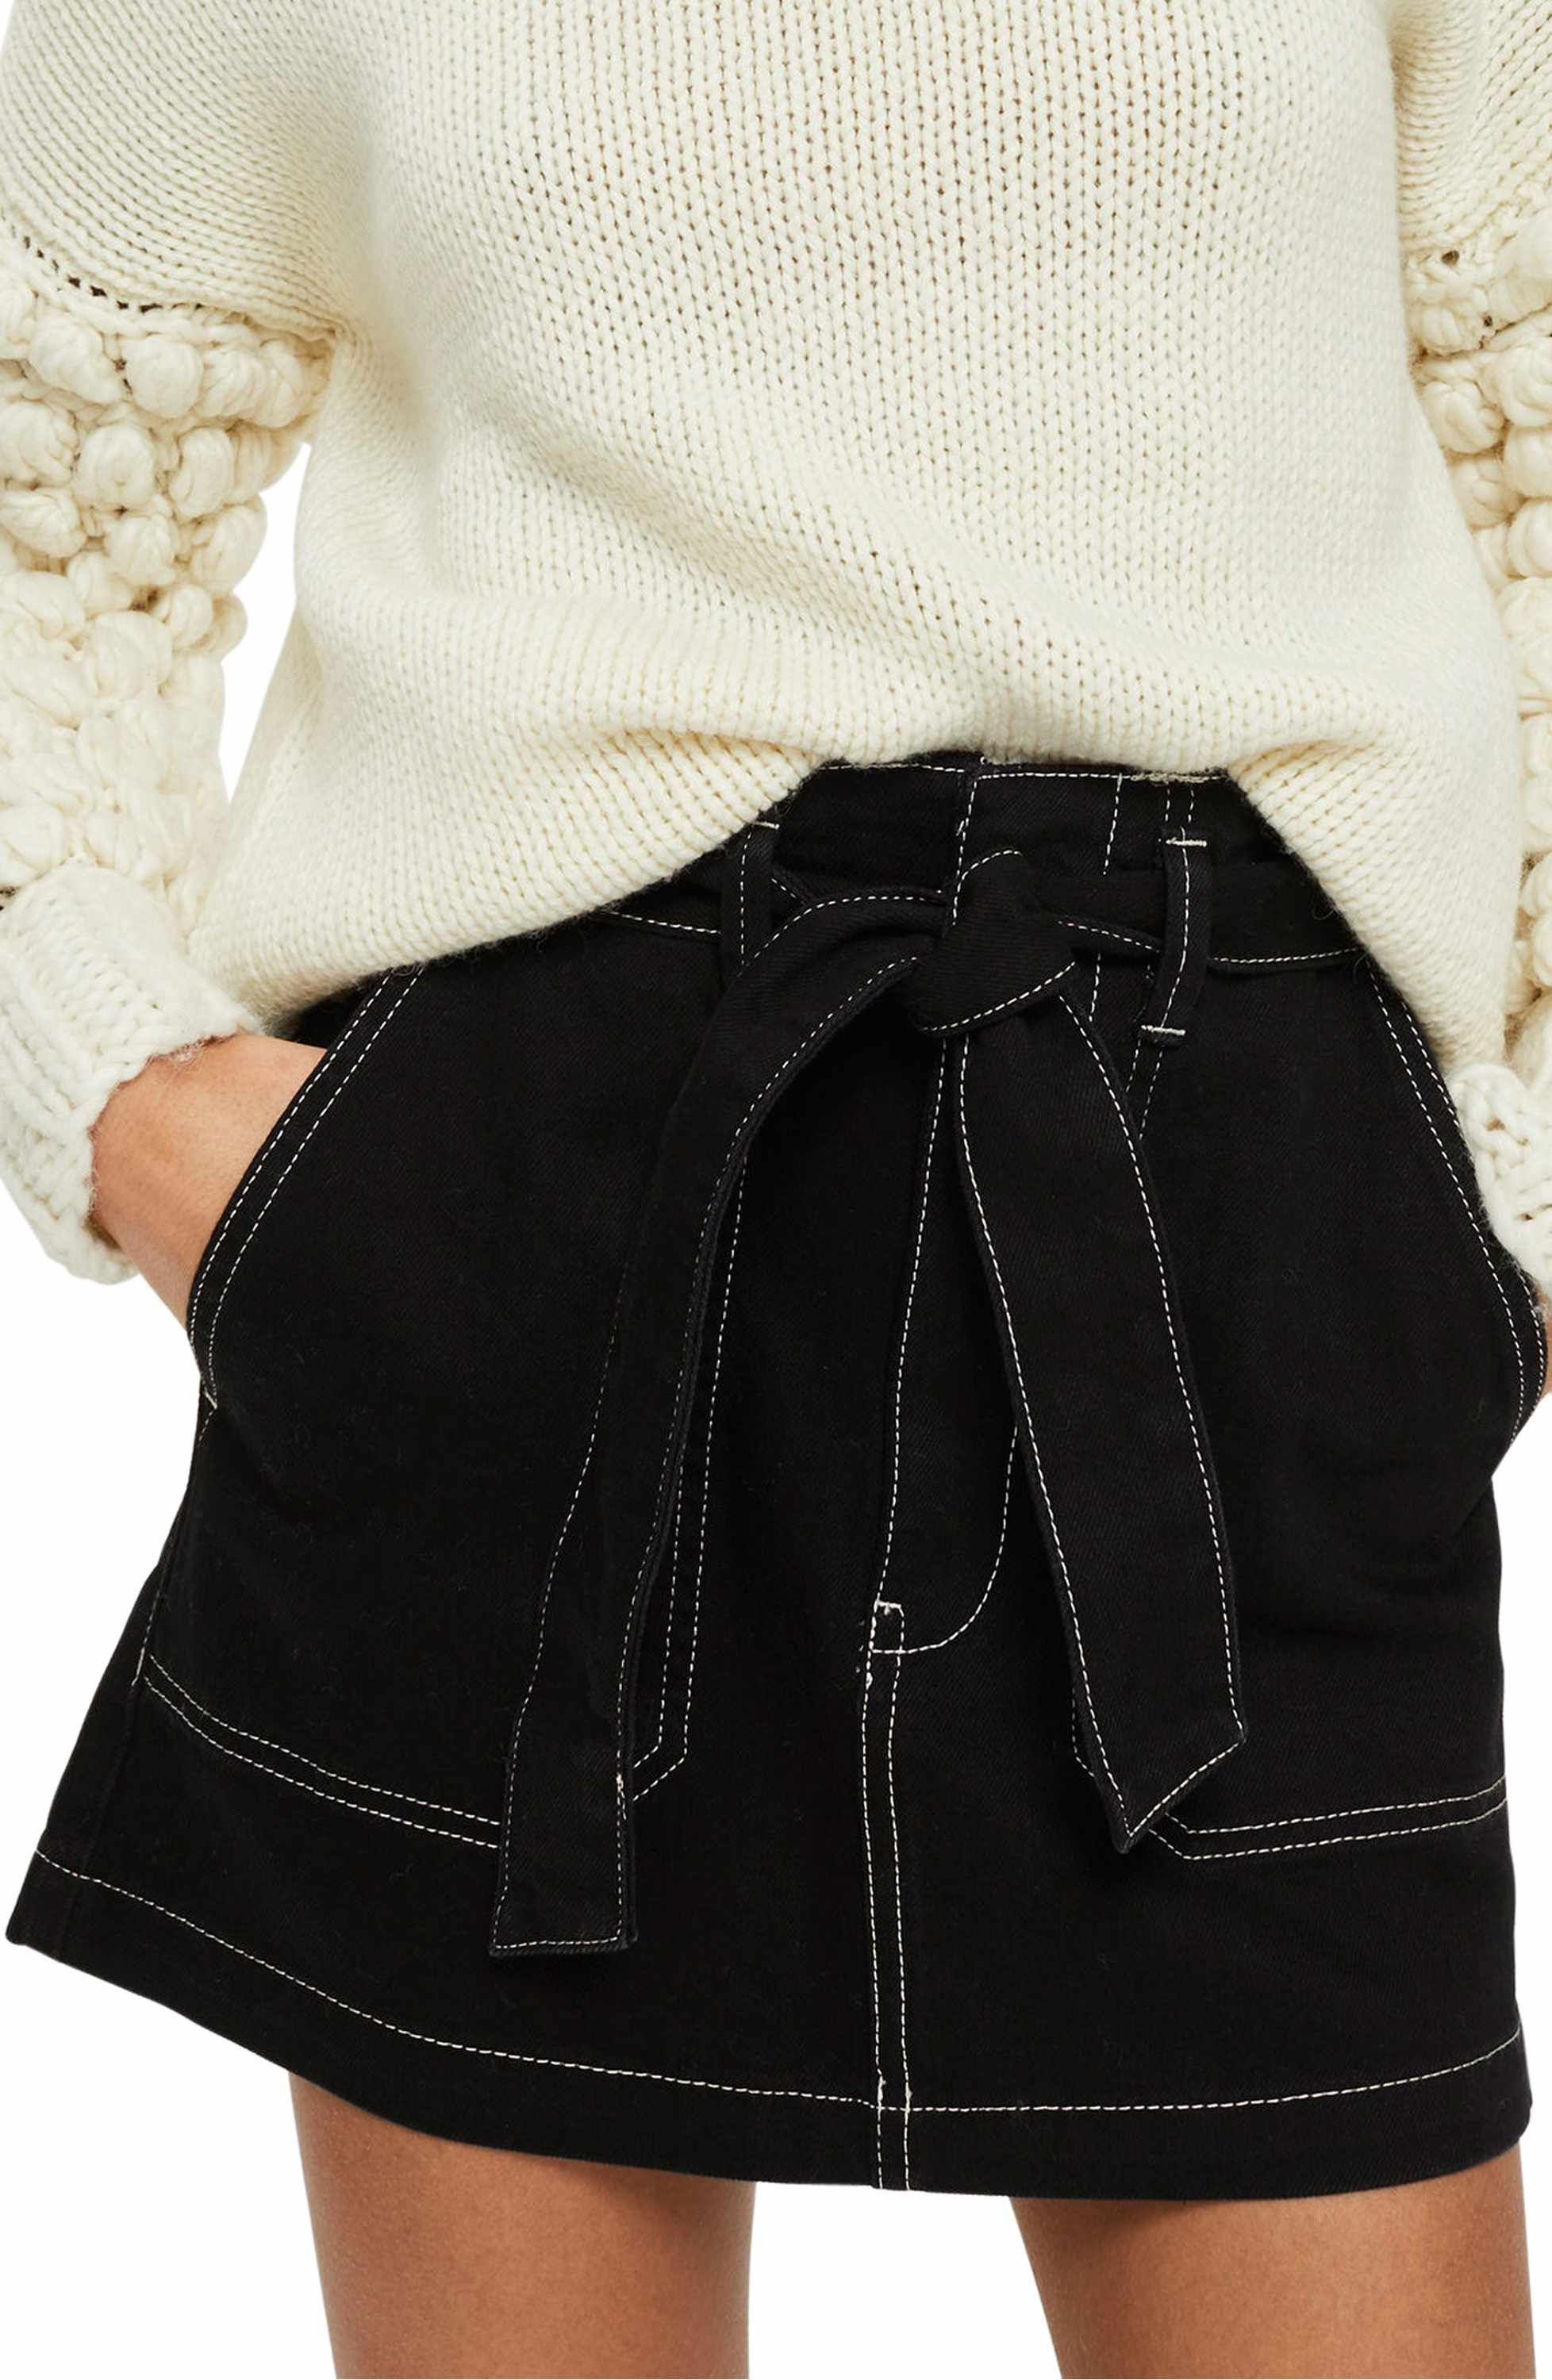 b554266951 Main Image - Topshop Stitch Detail Belted Denim Skirt | S K I R T S ...